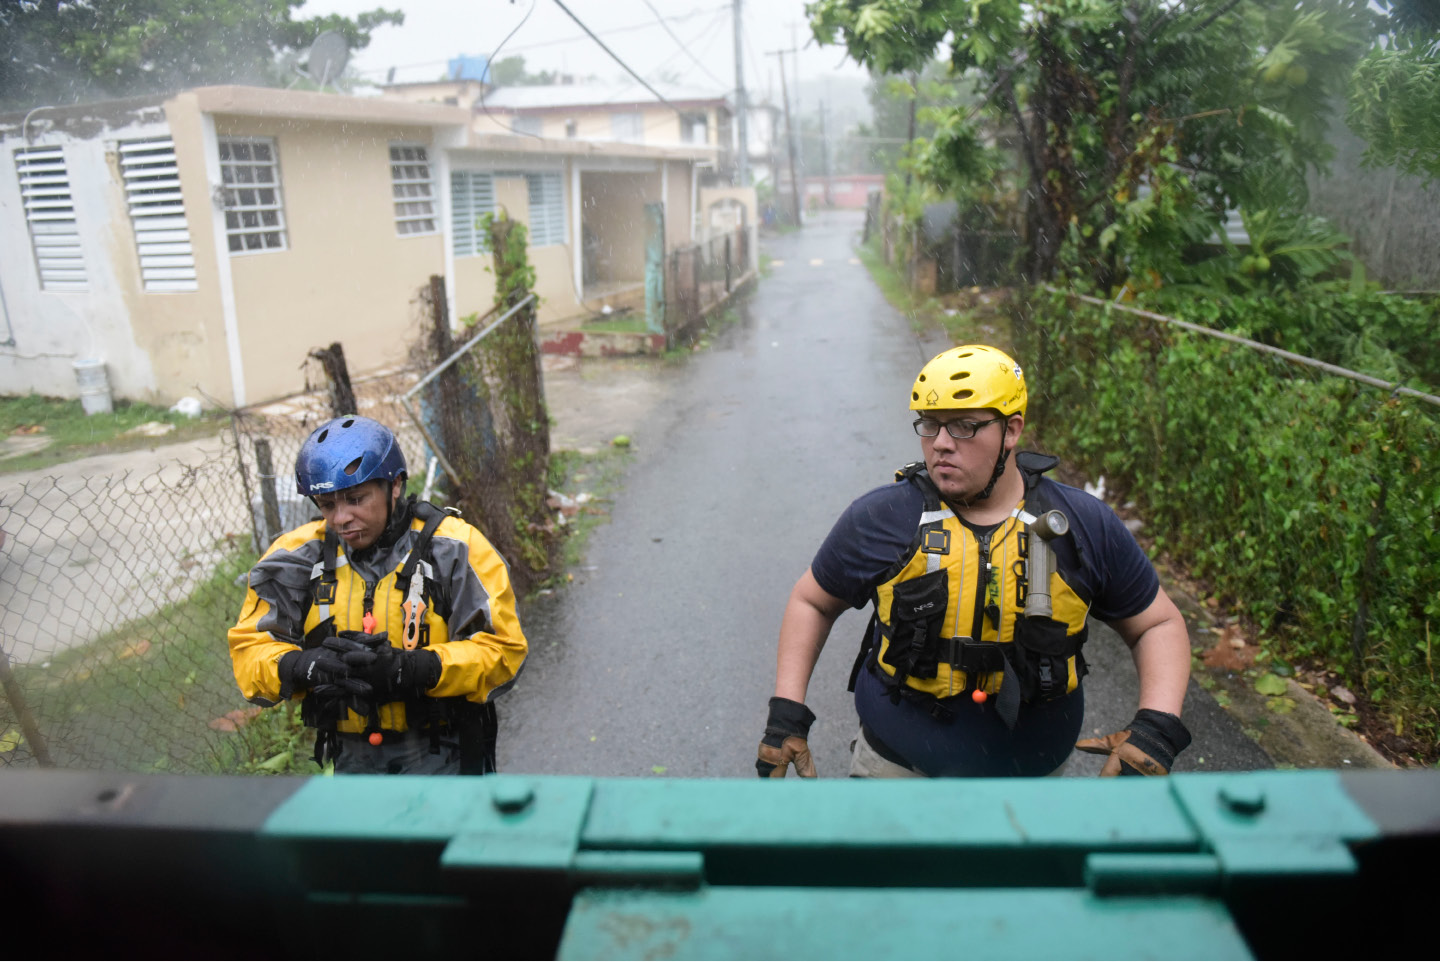 Julio Feliciano (left, and Adrian Colon, right, both rescue staff members from the Municipal Emergency Management Agency toured the streets of the Matelnillo community searching for citizens in distress during the passage of Hurricane Irma through the northeastern part of the island in Fajardo, Puerto Rico, Wednesday, Sept. 6, 2017. The US territory was first to declare a state of emergency las Monday, as the National Hurricane Center forecast that the storm would strike the Island Wednesday. (AP Photo/Carlos Giusti)